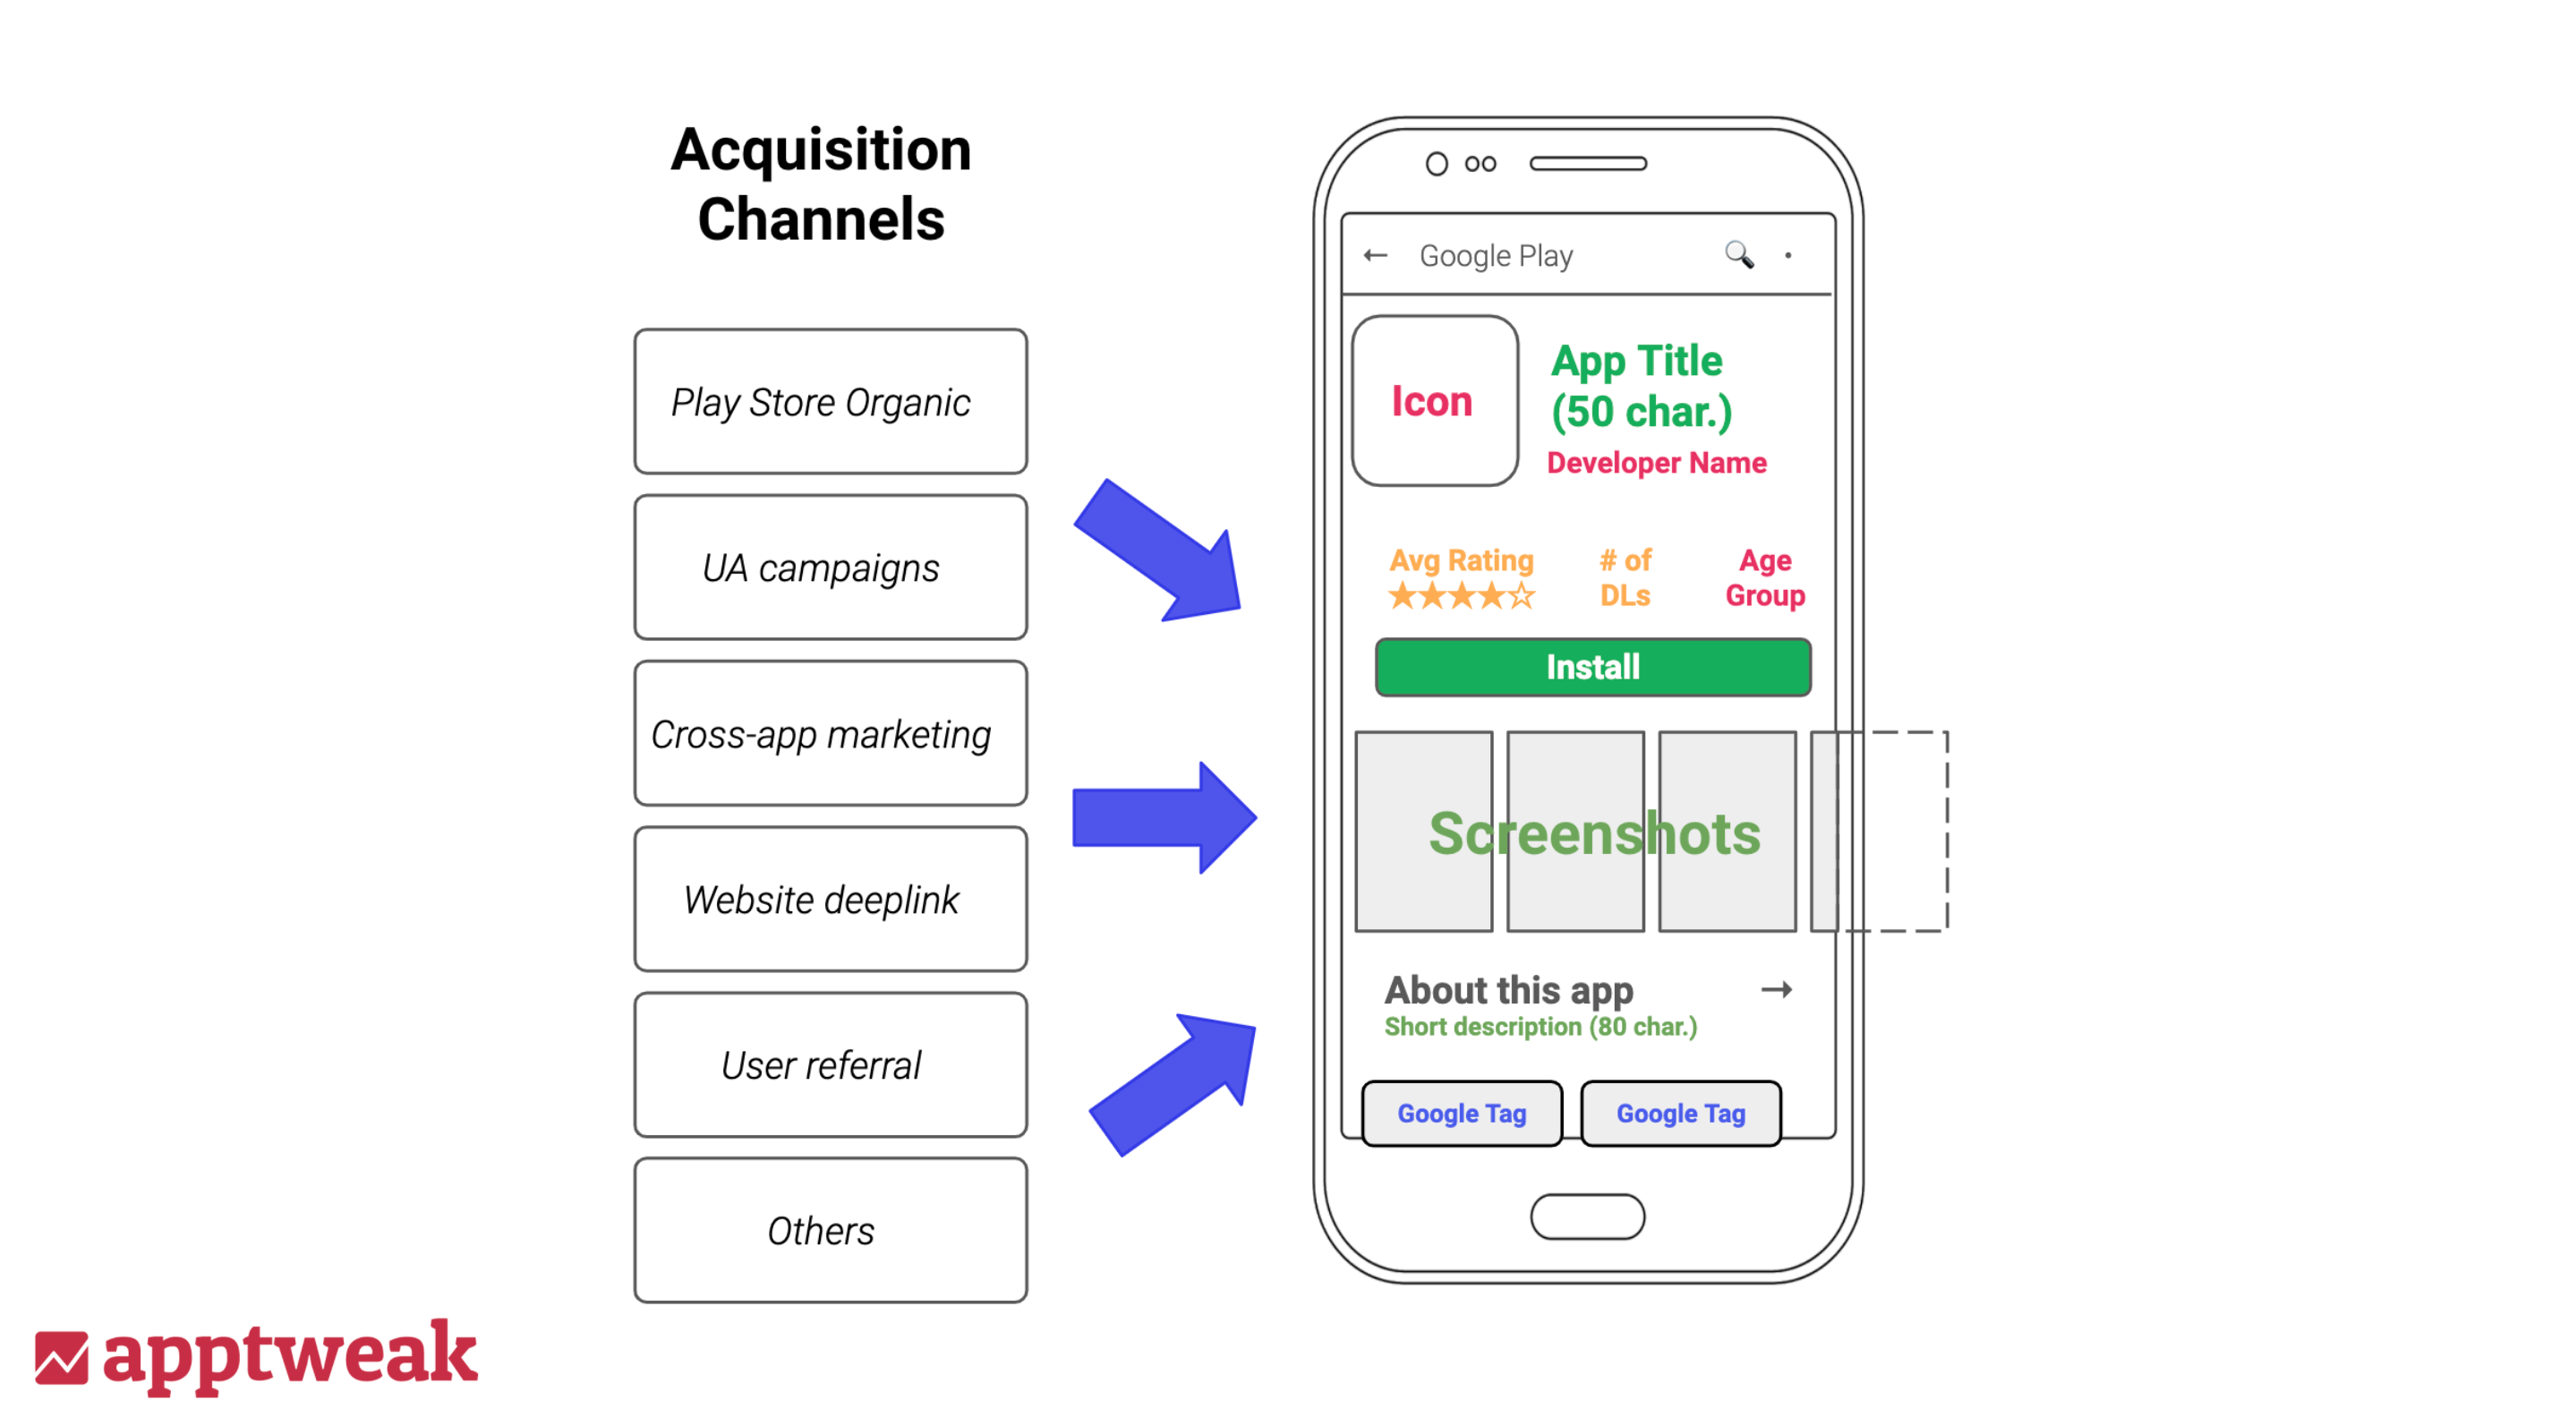 Scheme of how marketing channels lead to the app store